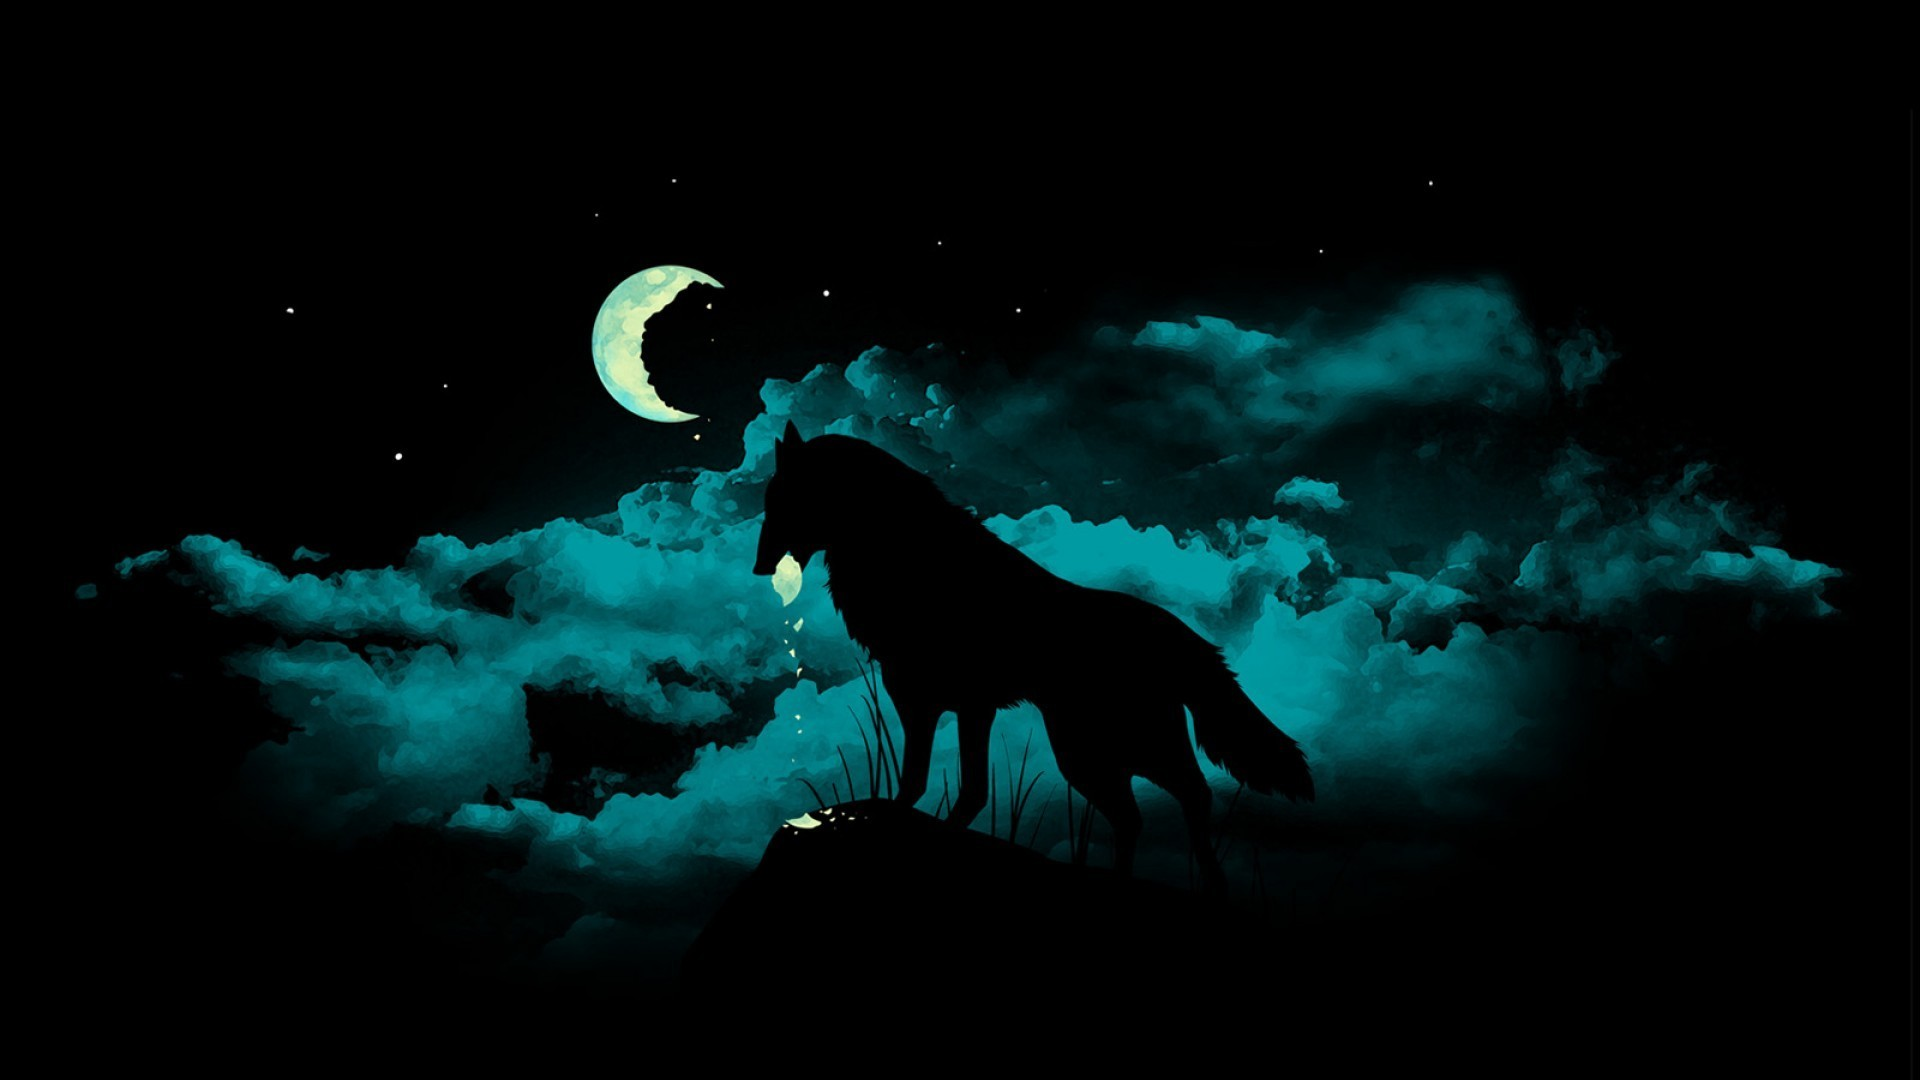 Beautiful Wild Animals Wallpapers Hd Wolf Wallpapers 1080p 71 Images